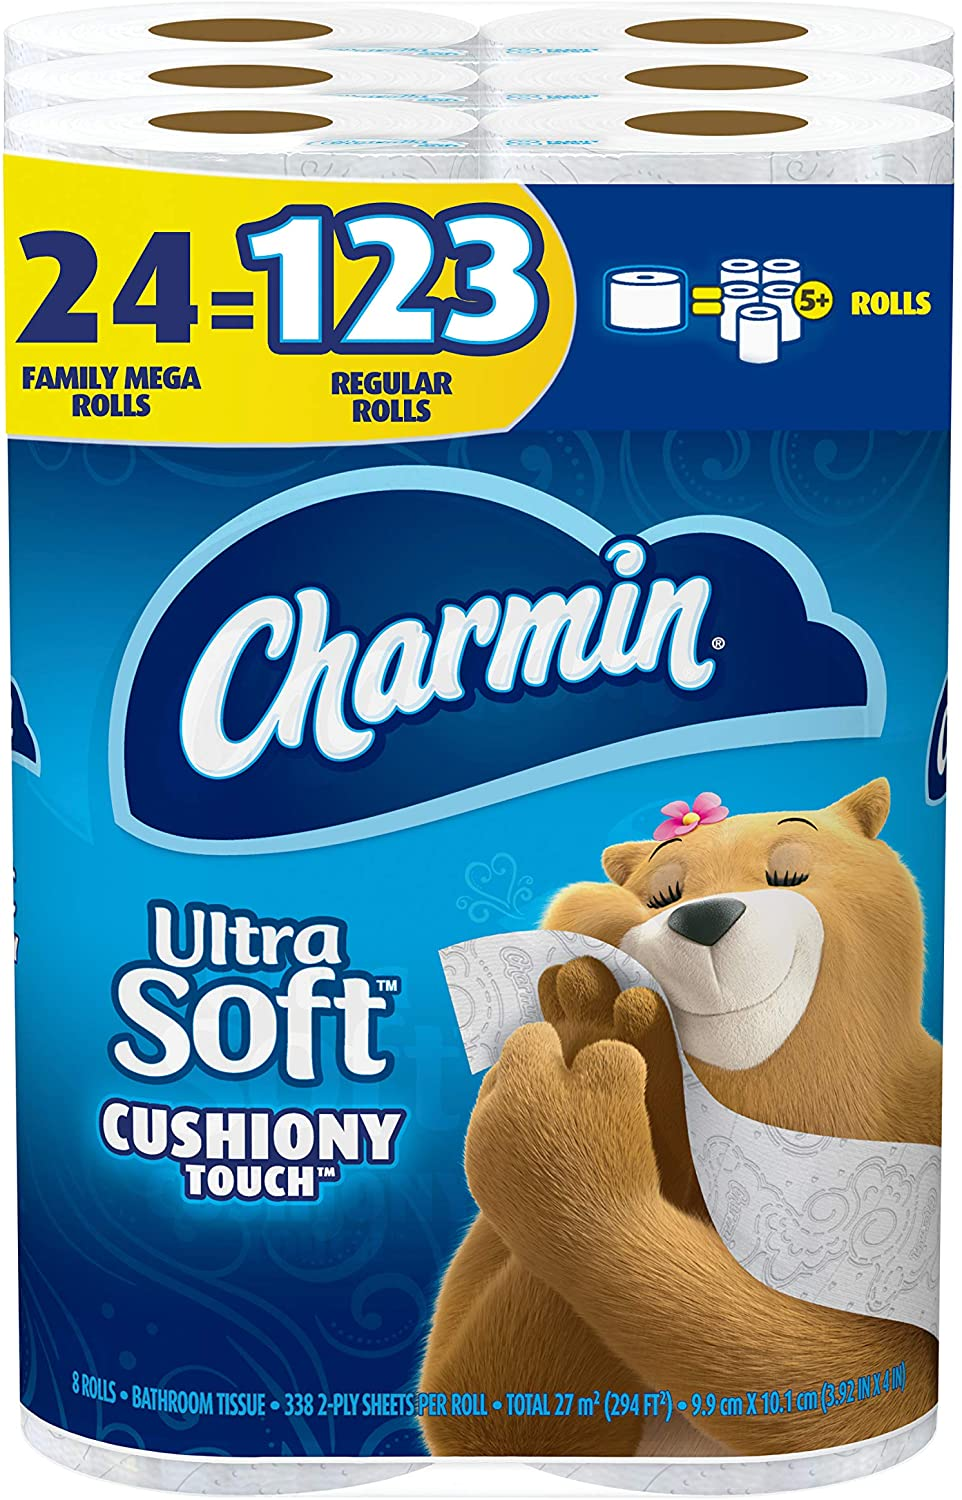 Charmin Ultra Soft Cushiony Touch Toilet Paper, 123-Rolls